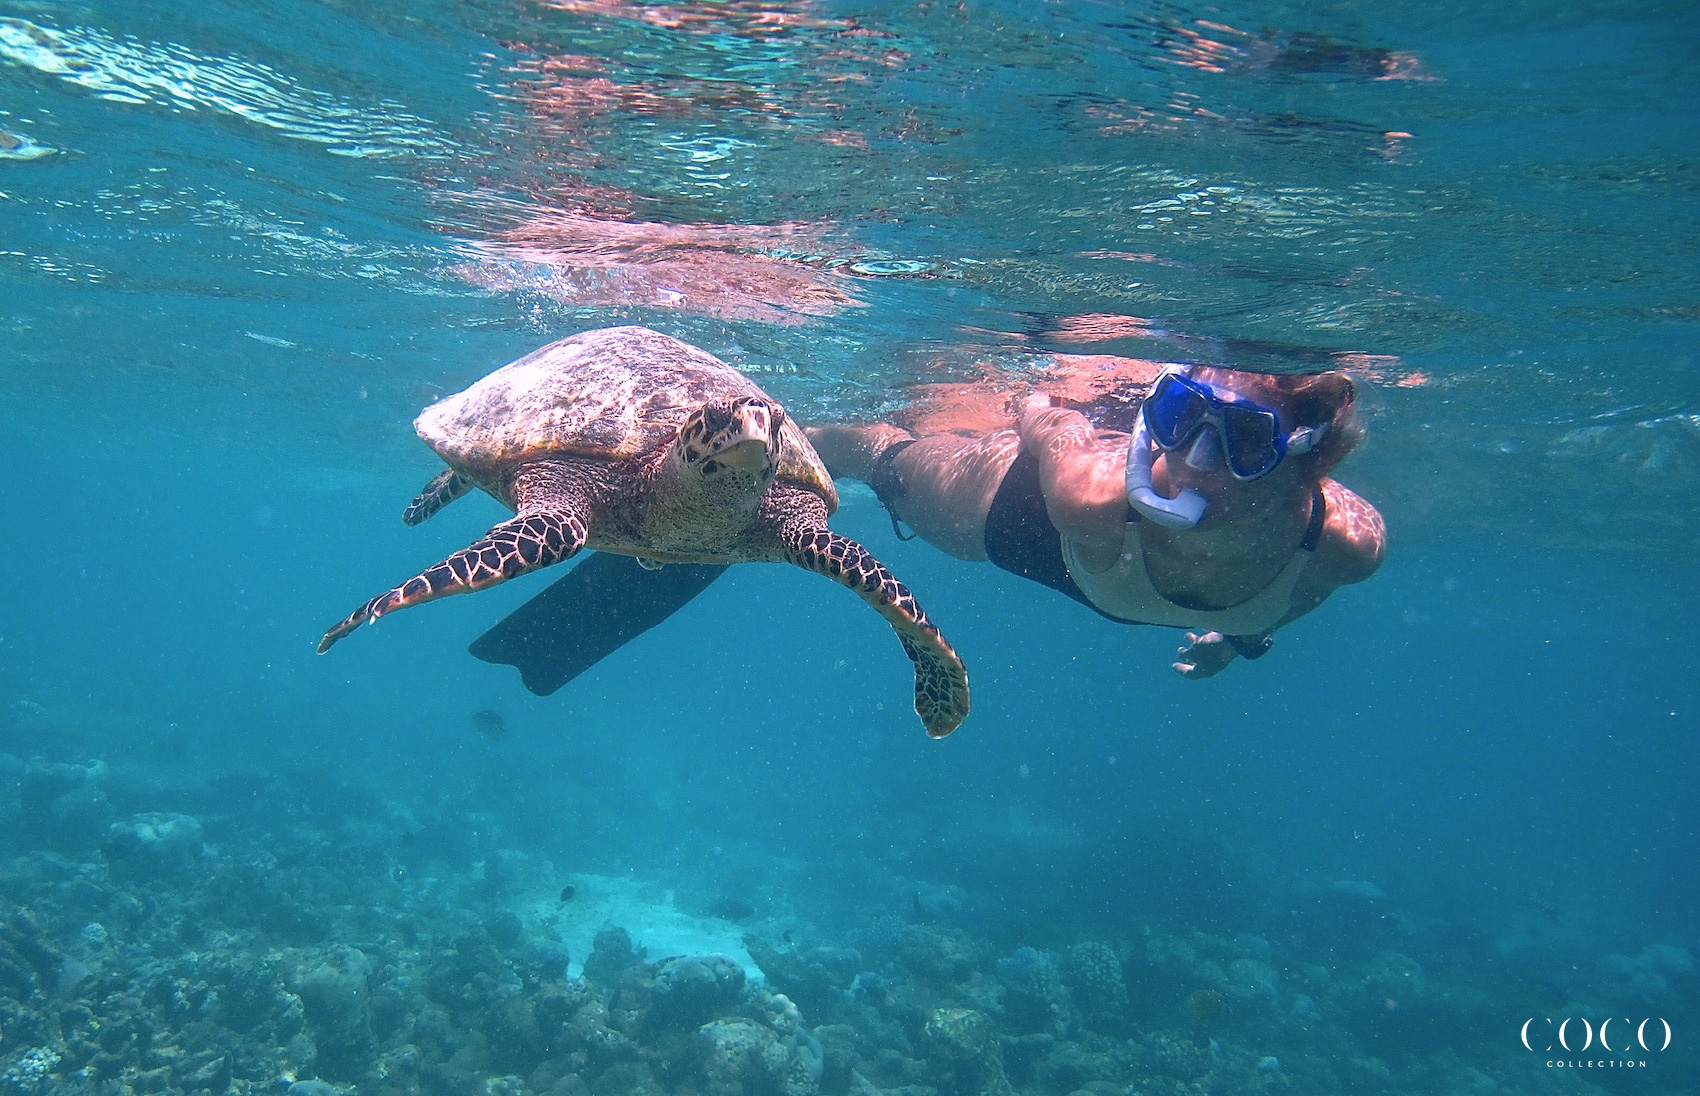 Turtles, Manta Rays and Sharks! We have it all at Coco Bodu Hithi